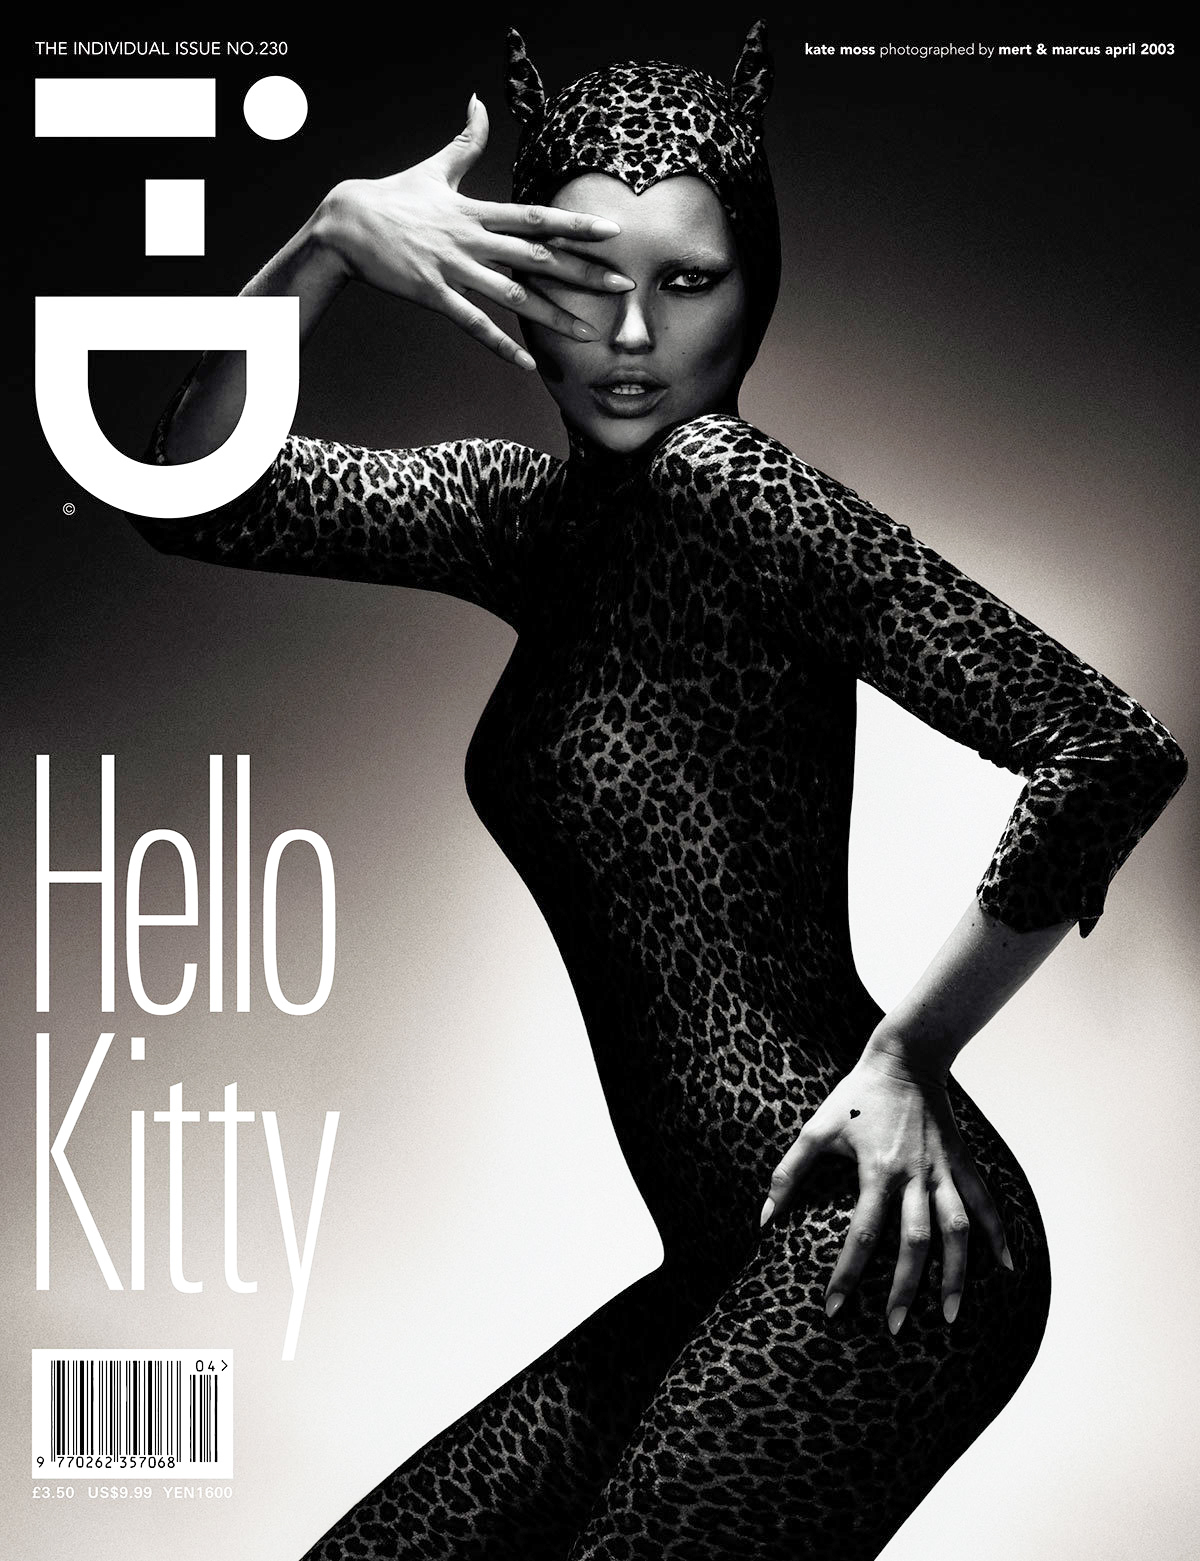 edward-enninfuls-most-i-conic-i-d-covers-of-the-00s-body-image-.jpg